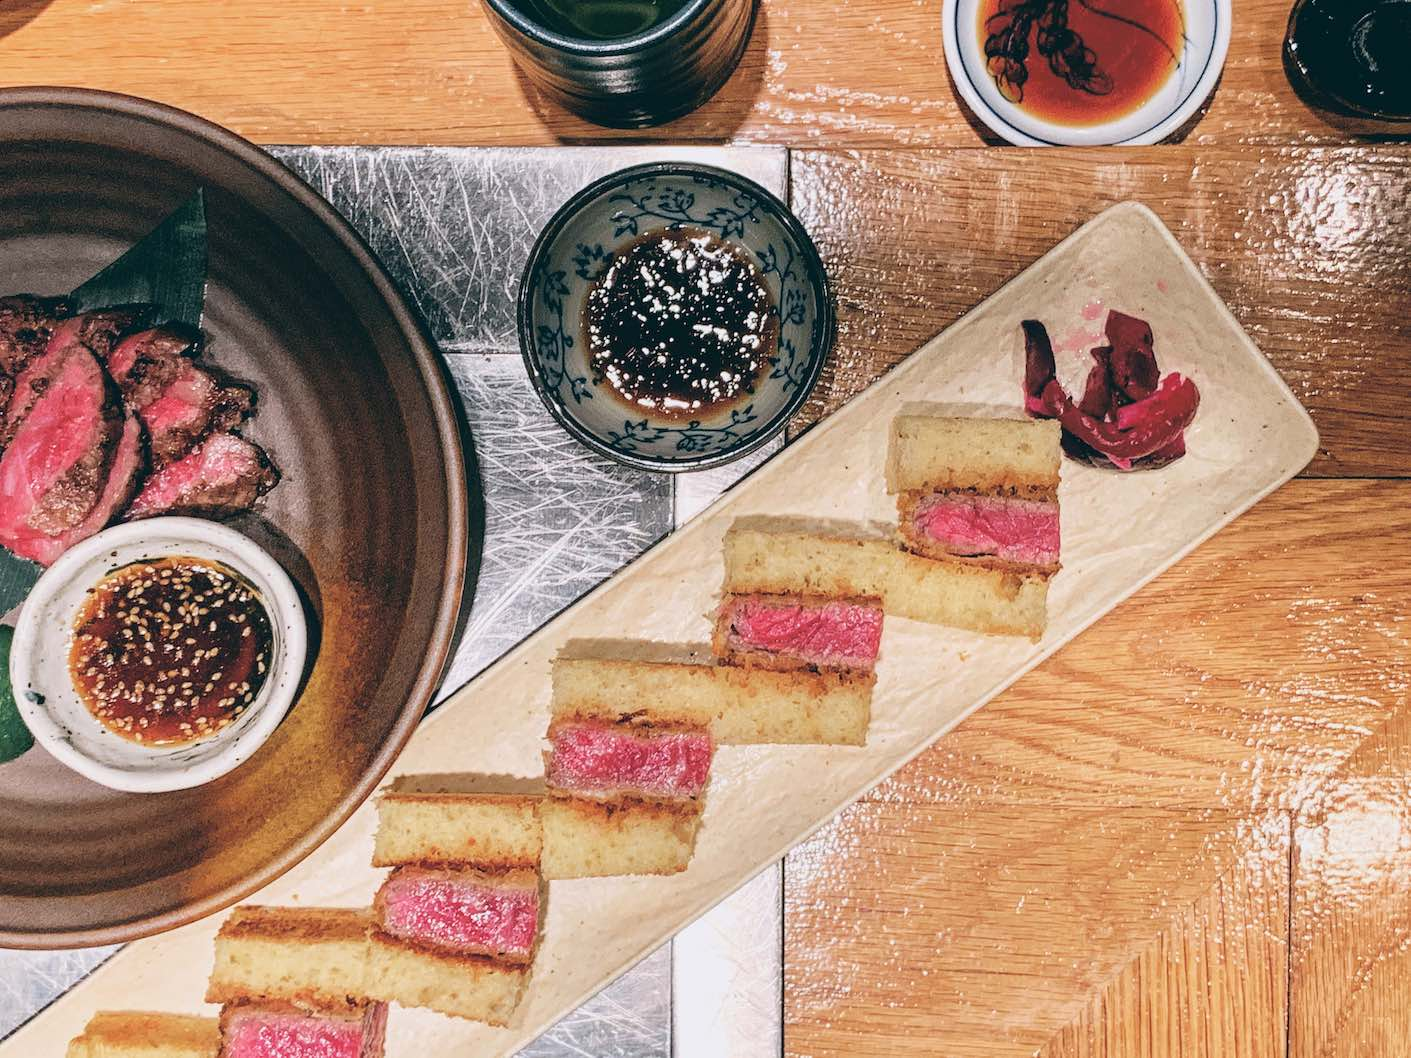 Singapore: premium cuts and fine dining at Fat Cow